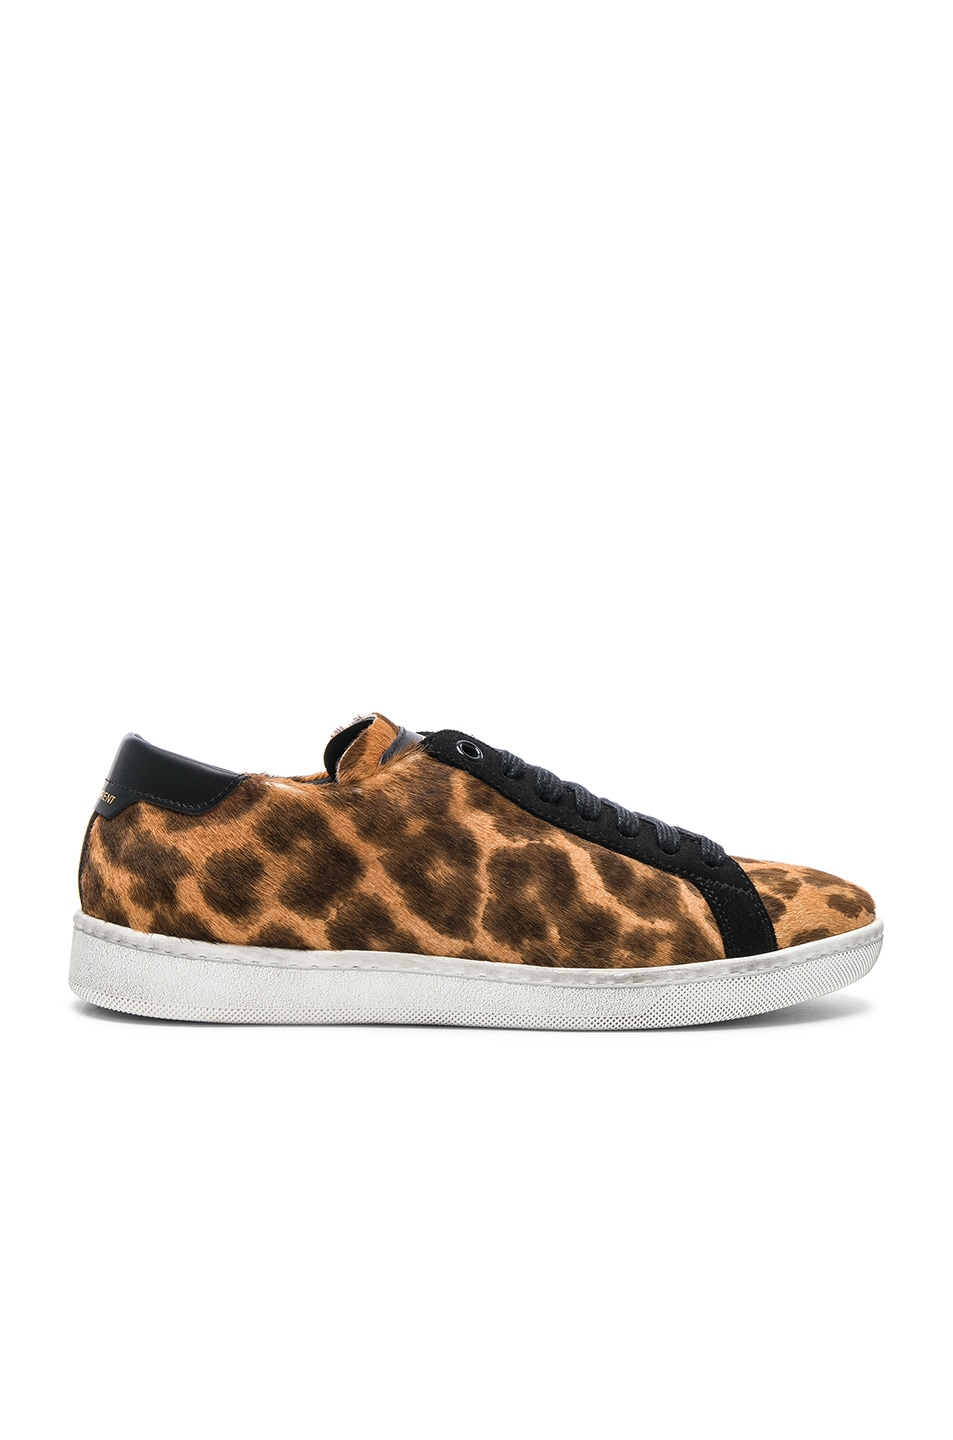 SAINT LAURENT PONY HAIR & SUEDE COURT CLASSIC SNEAKERS IN BROWN,ANIMAL PRINT